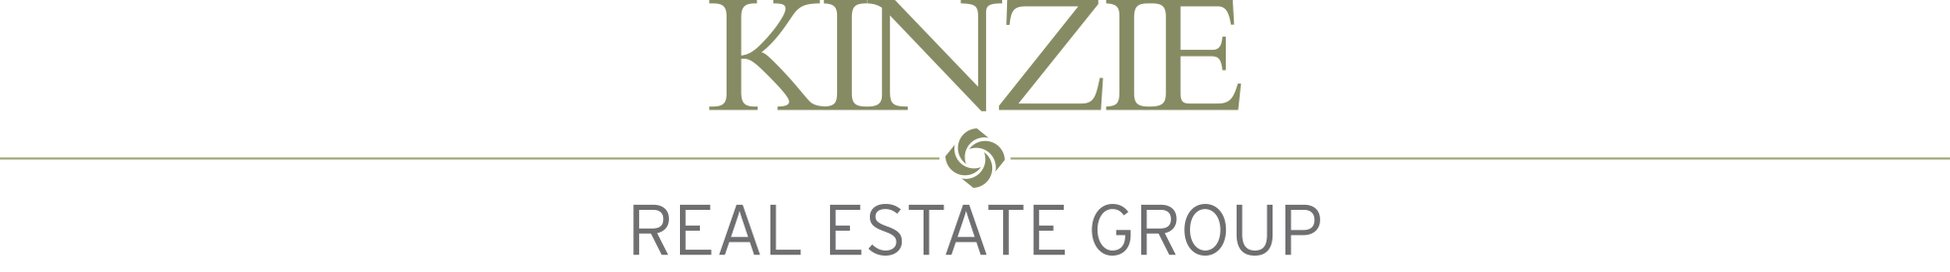 Kinzie Group Logo